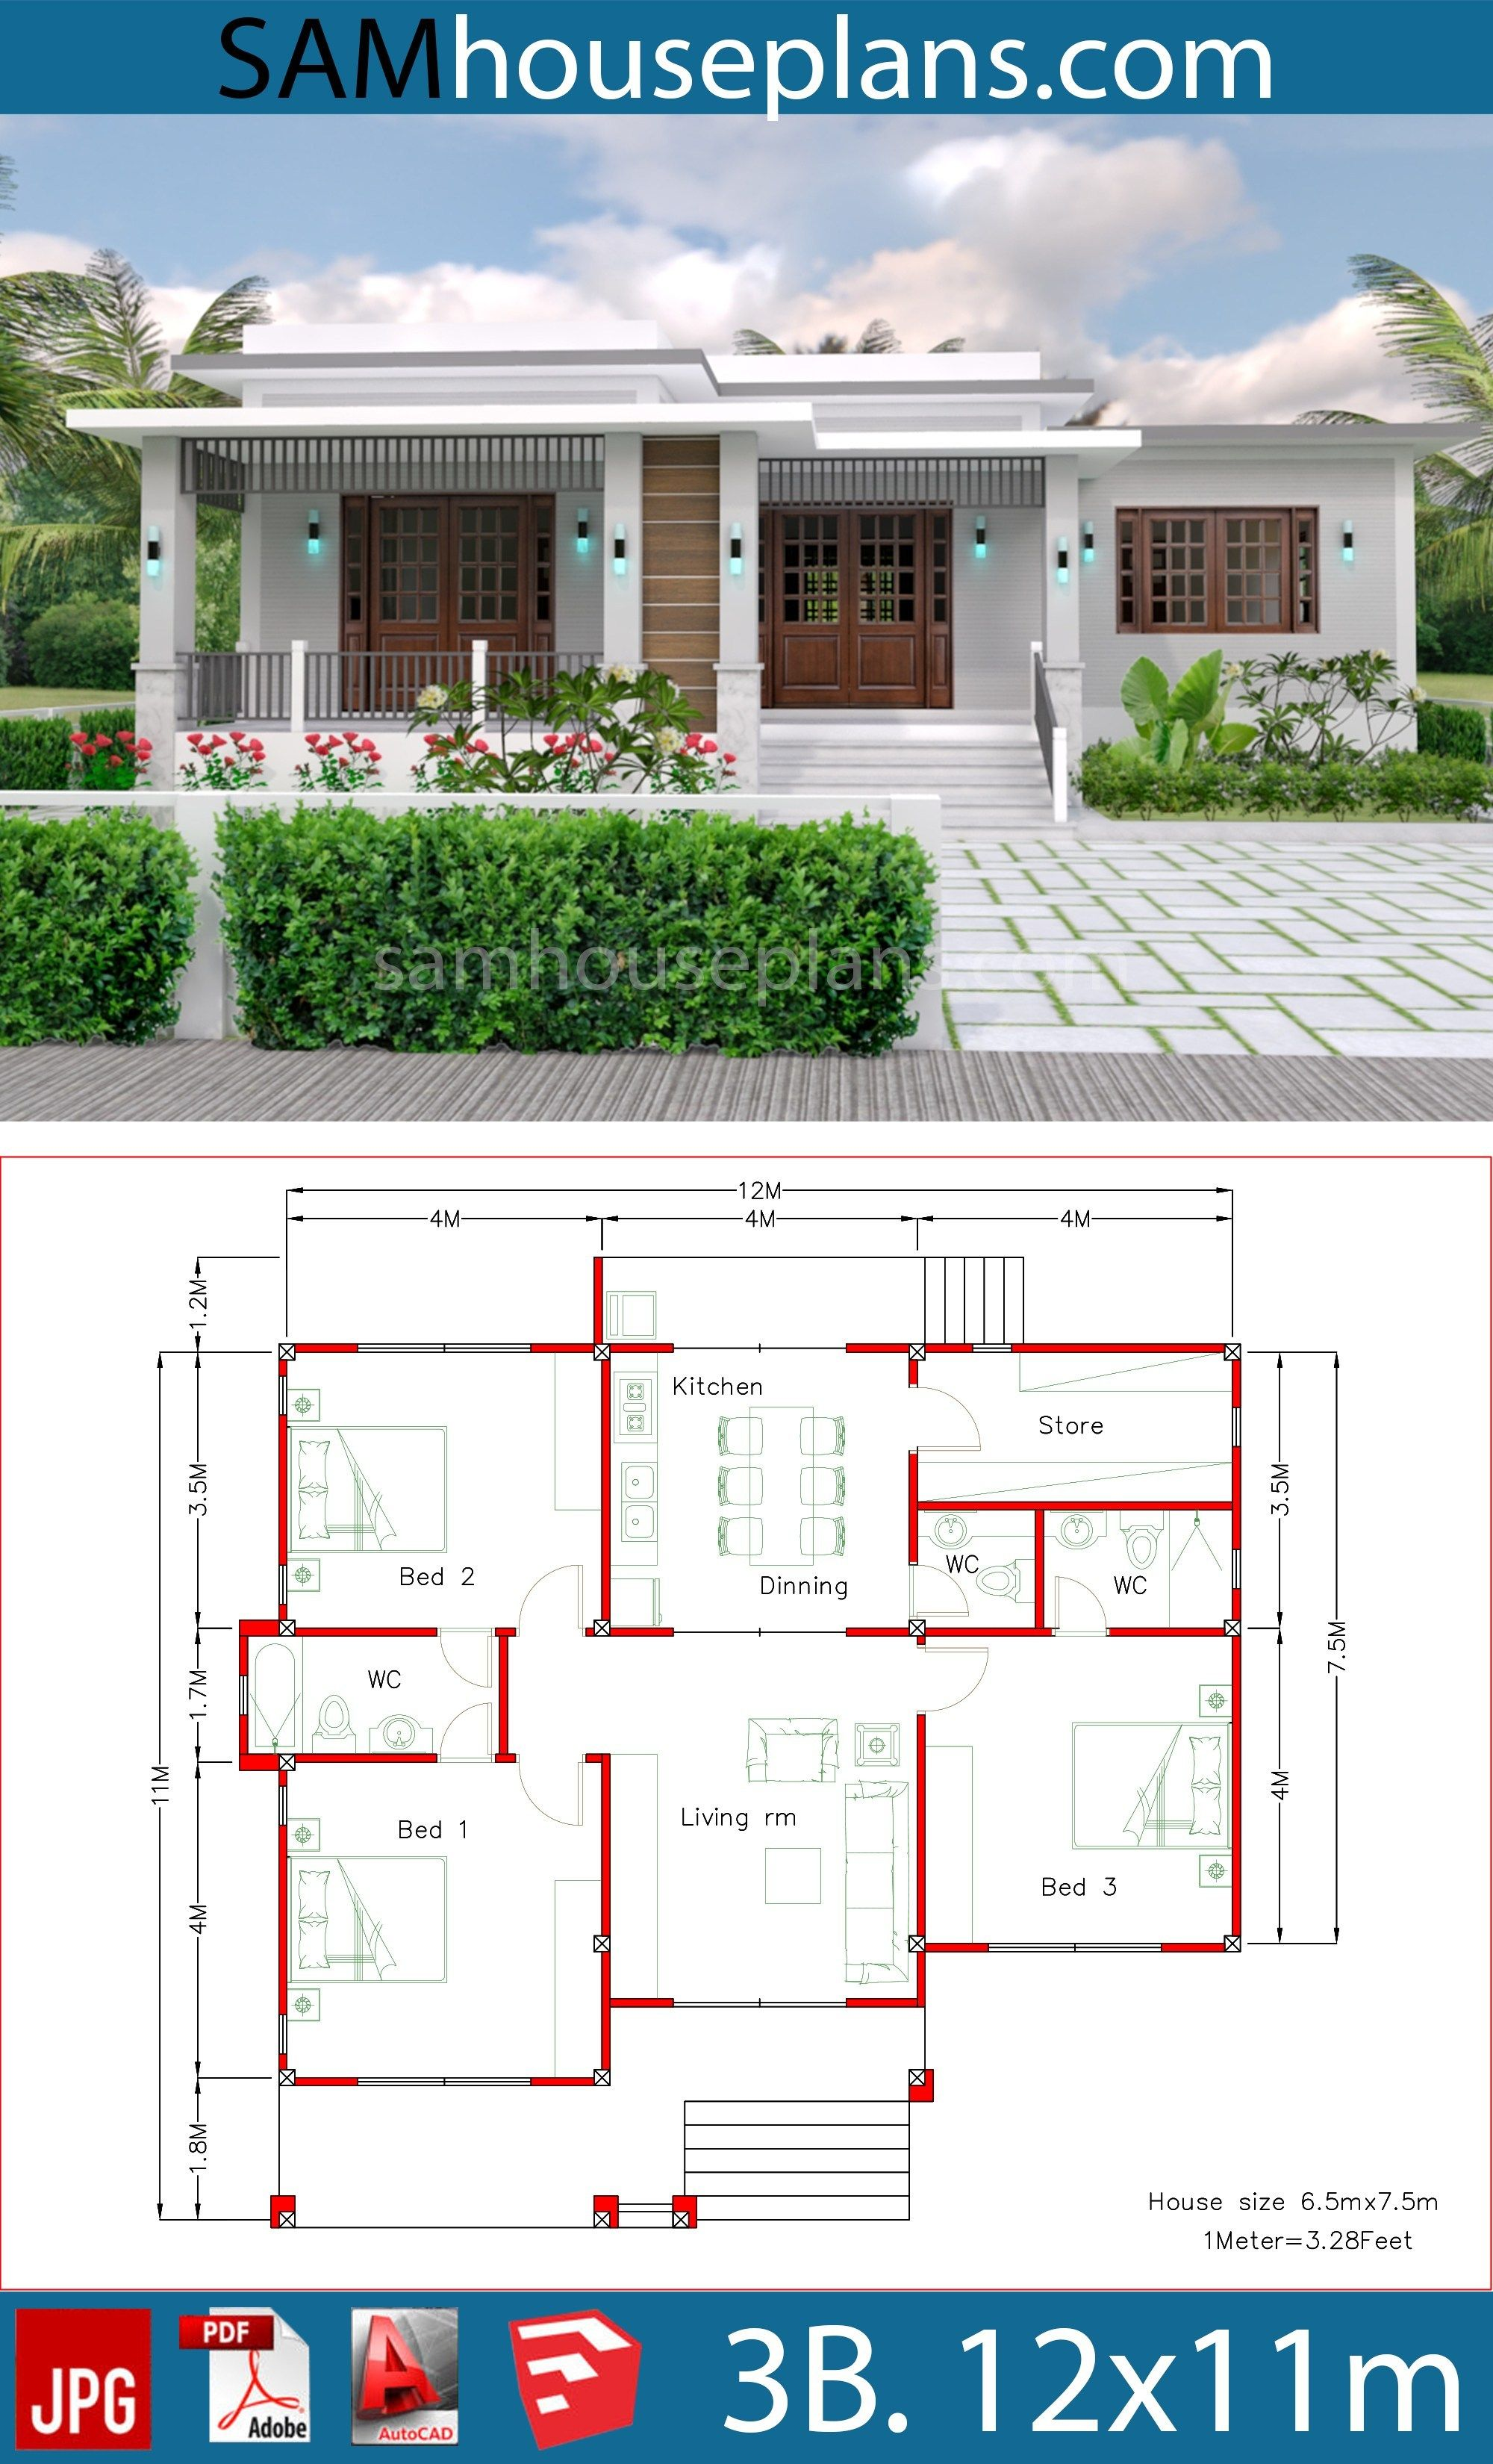 House Plans 12x11m with 3 Bedrooms | Village house design ...